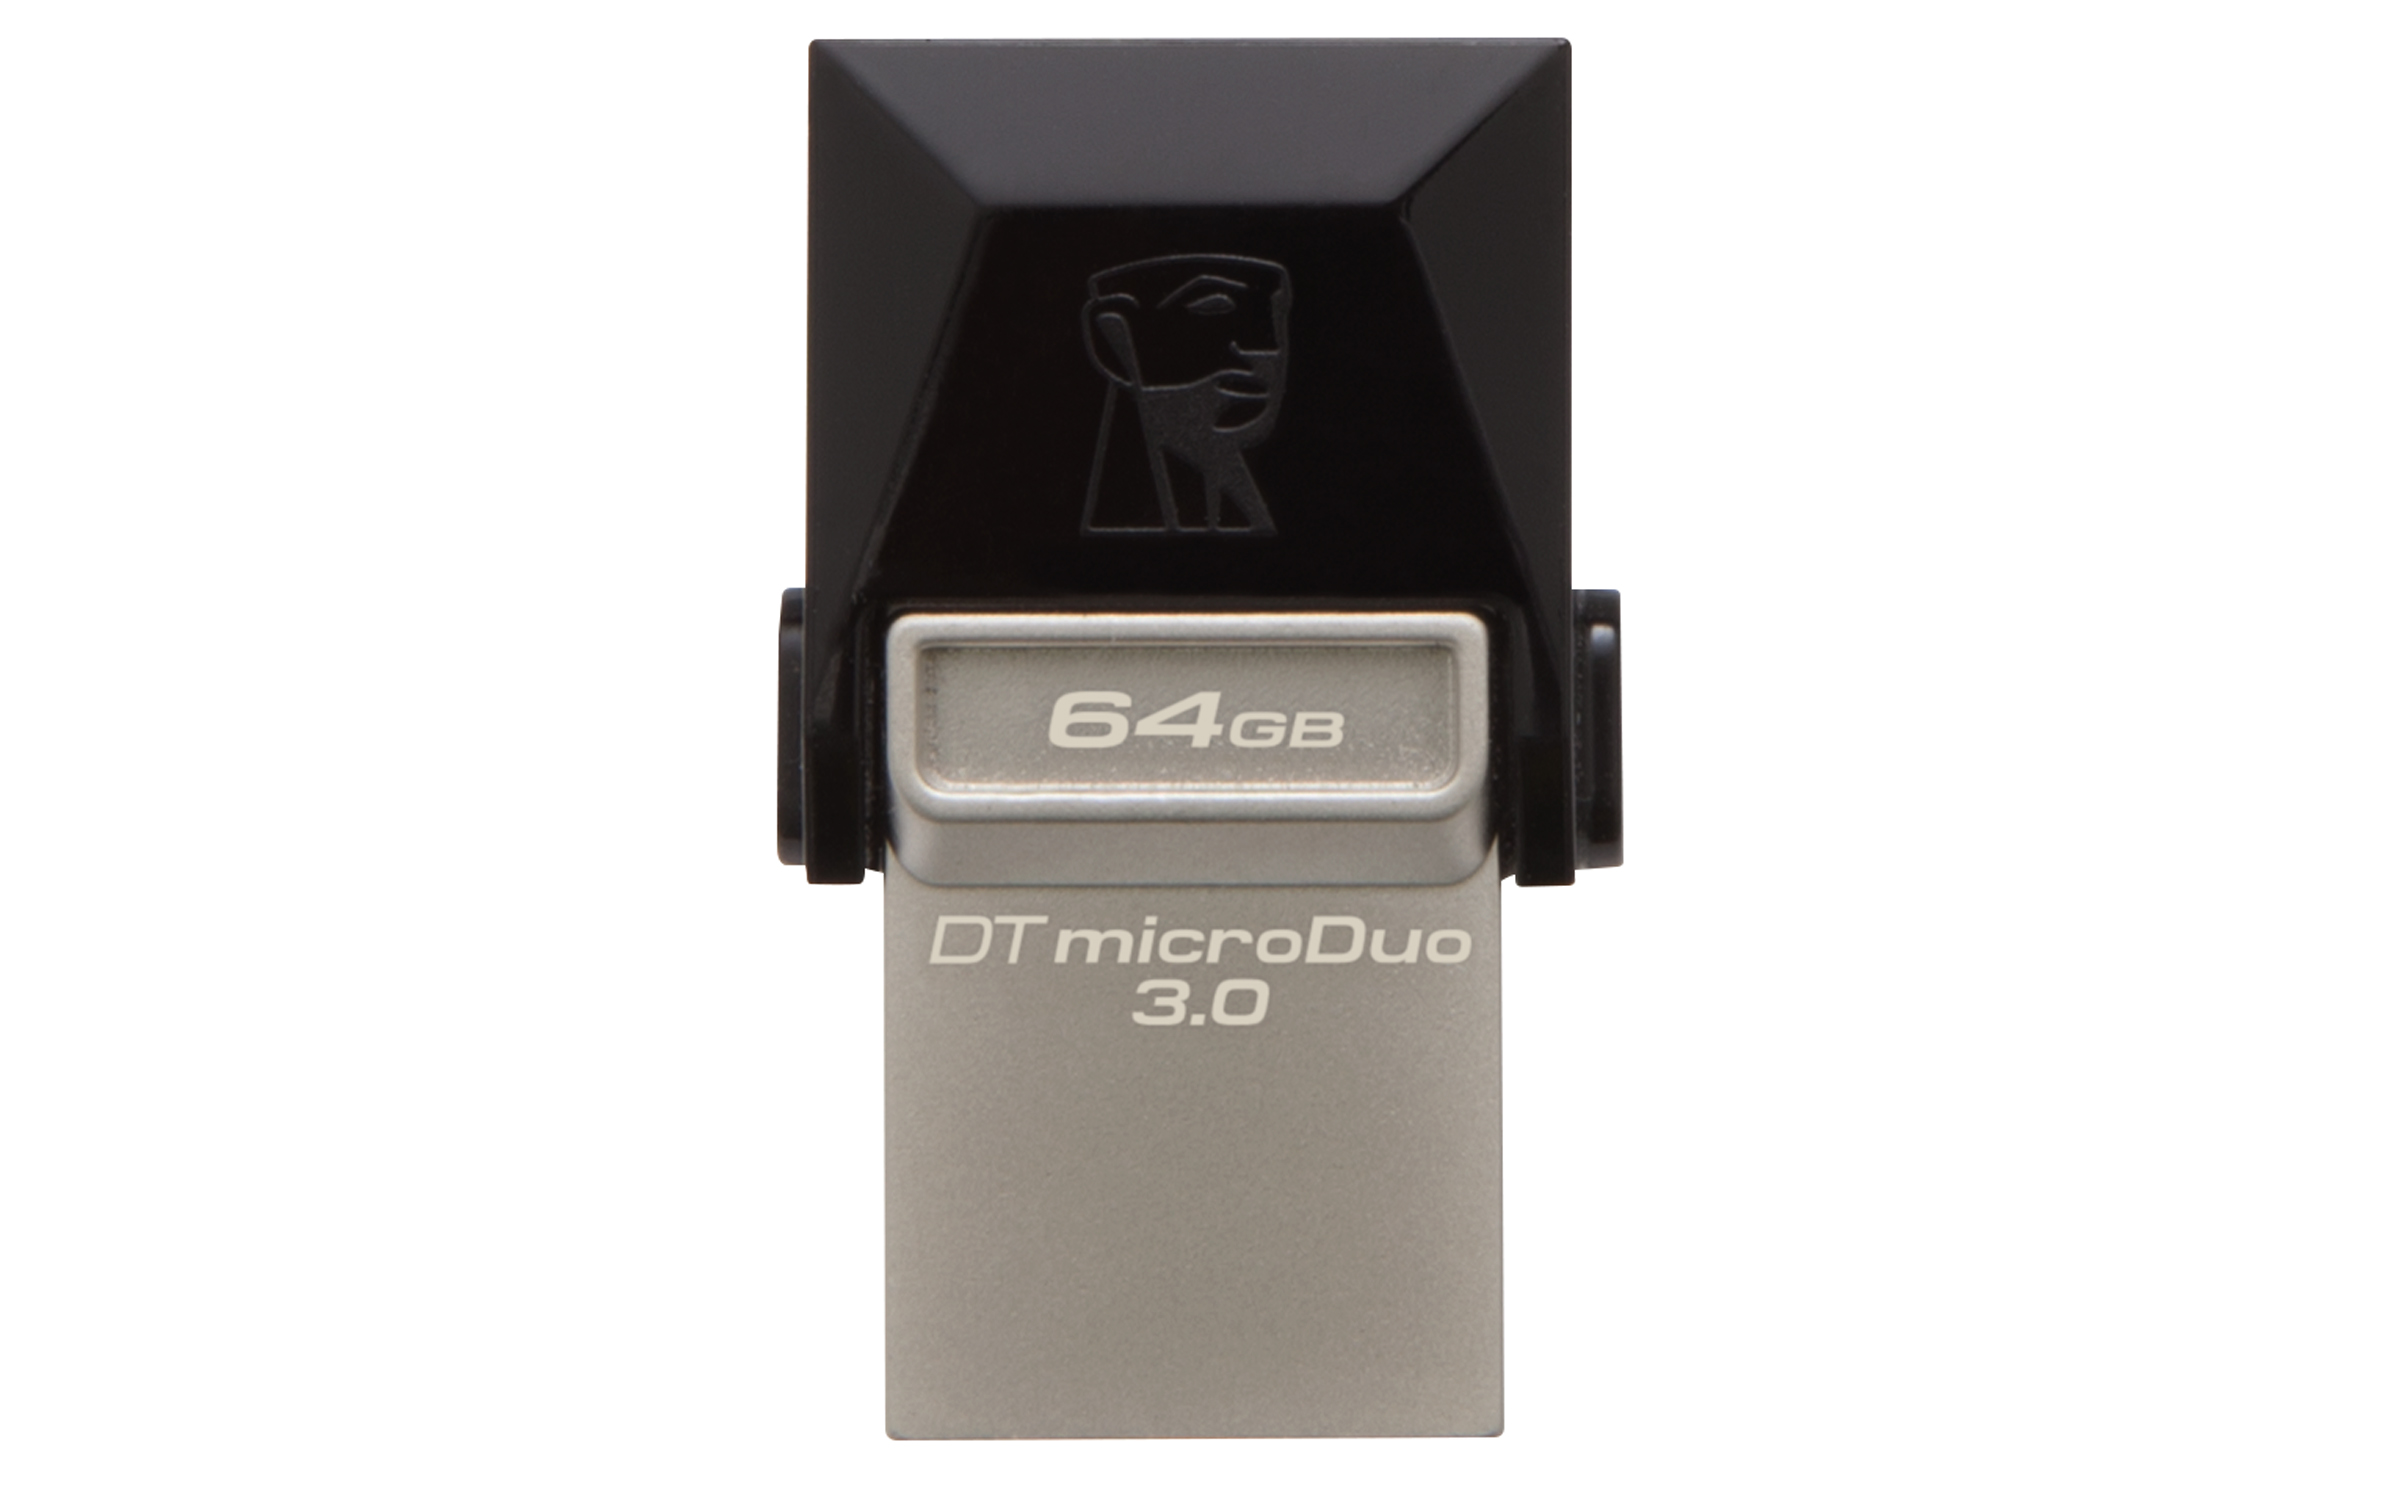 KINGSTON 64GB DT microDuo USB 3.0/ micro USB OTG